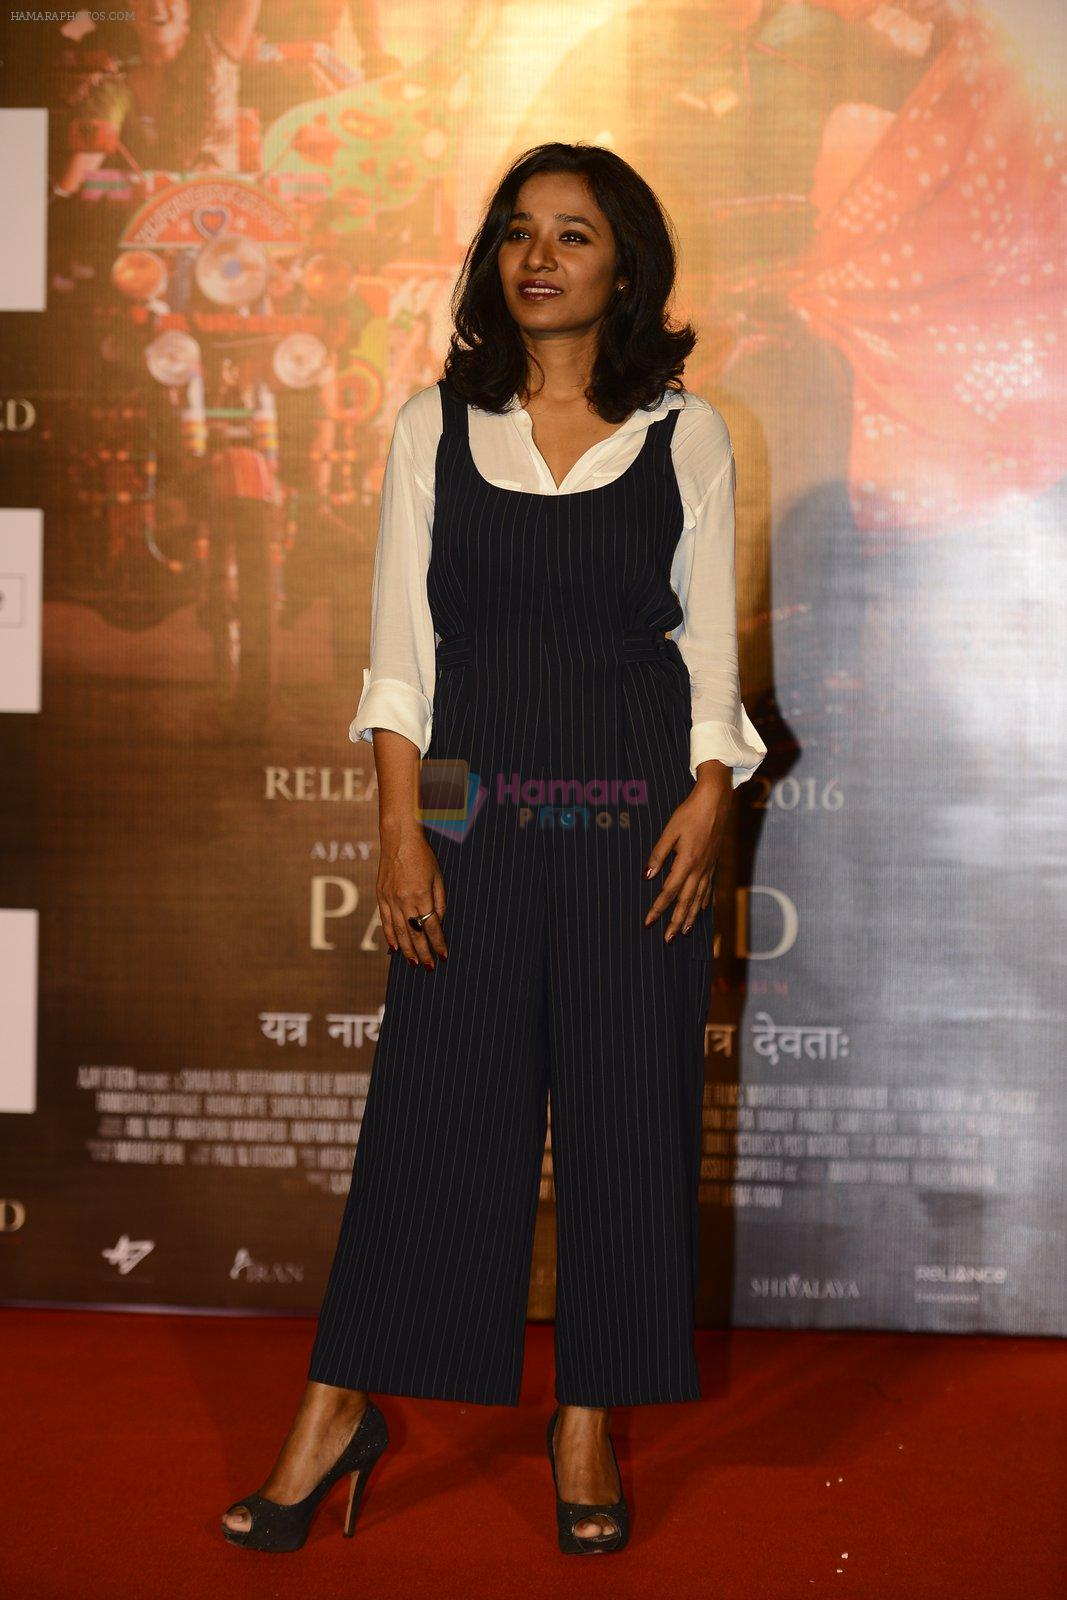 Tannishtha Chatterjee at Ajay devgan's parched press meet